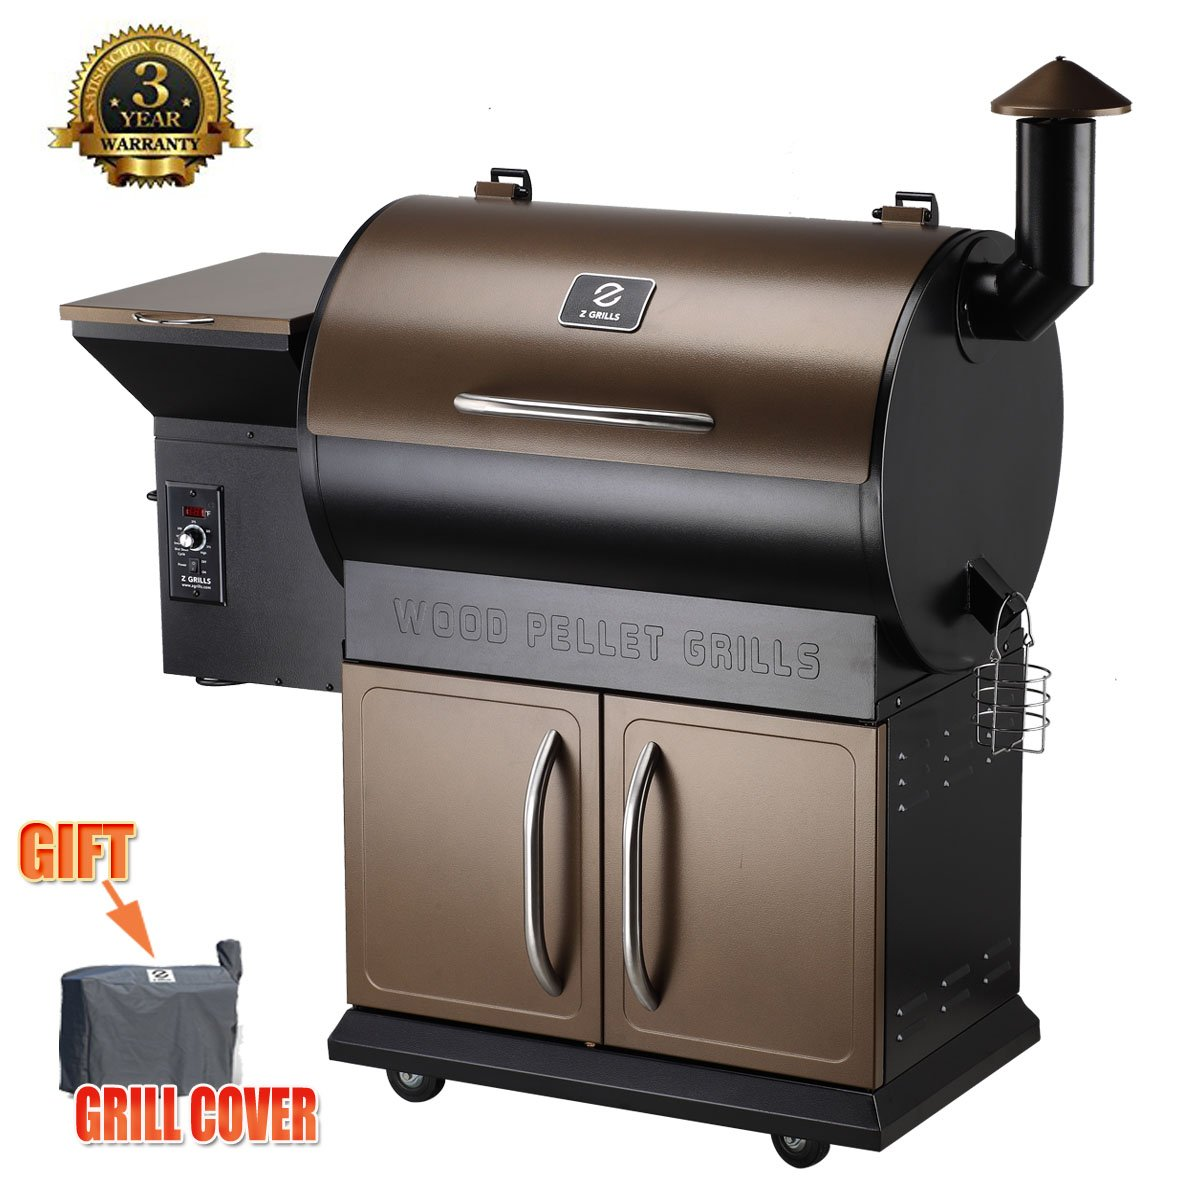 Z Grills Wood Pellet Grill & Smoker with Patio Cover,700 Cooking Area 7 in 1- Grill, Smoke, Bake, Roast, Braise and BBQ with Electric Digital Controls for Outdoor (Black and Bronze) by Z Grills